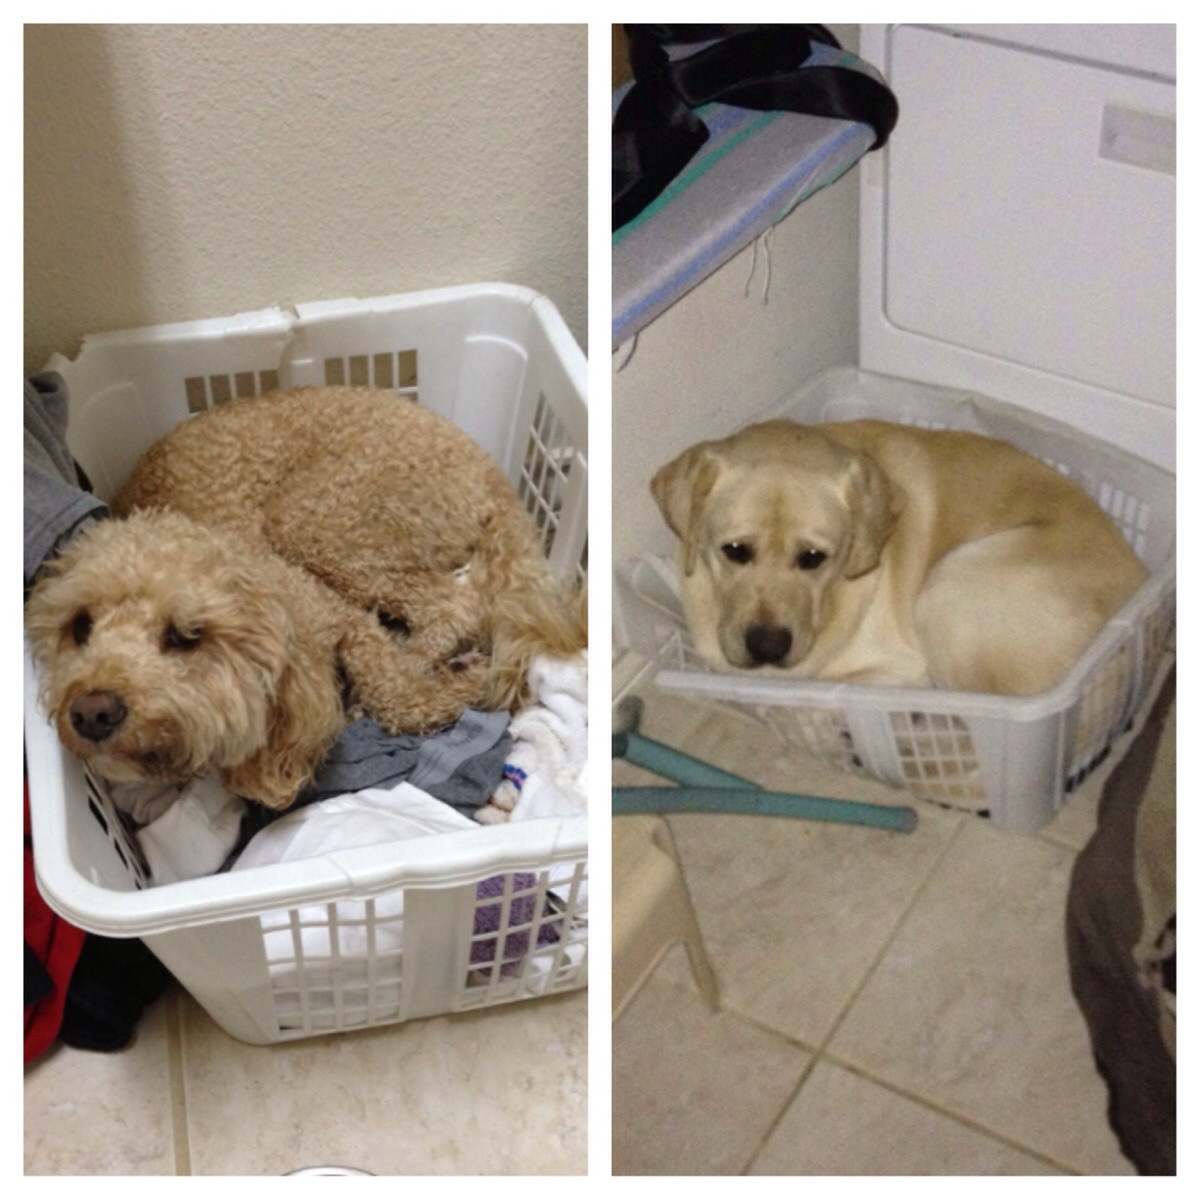 puppy is very sad he broke the laundry basket he deserves a bigger one